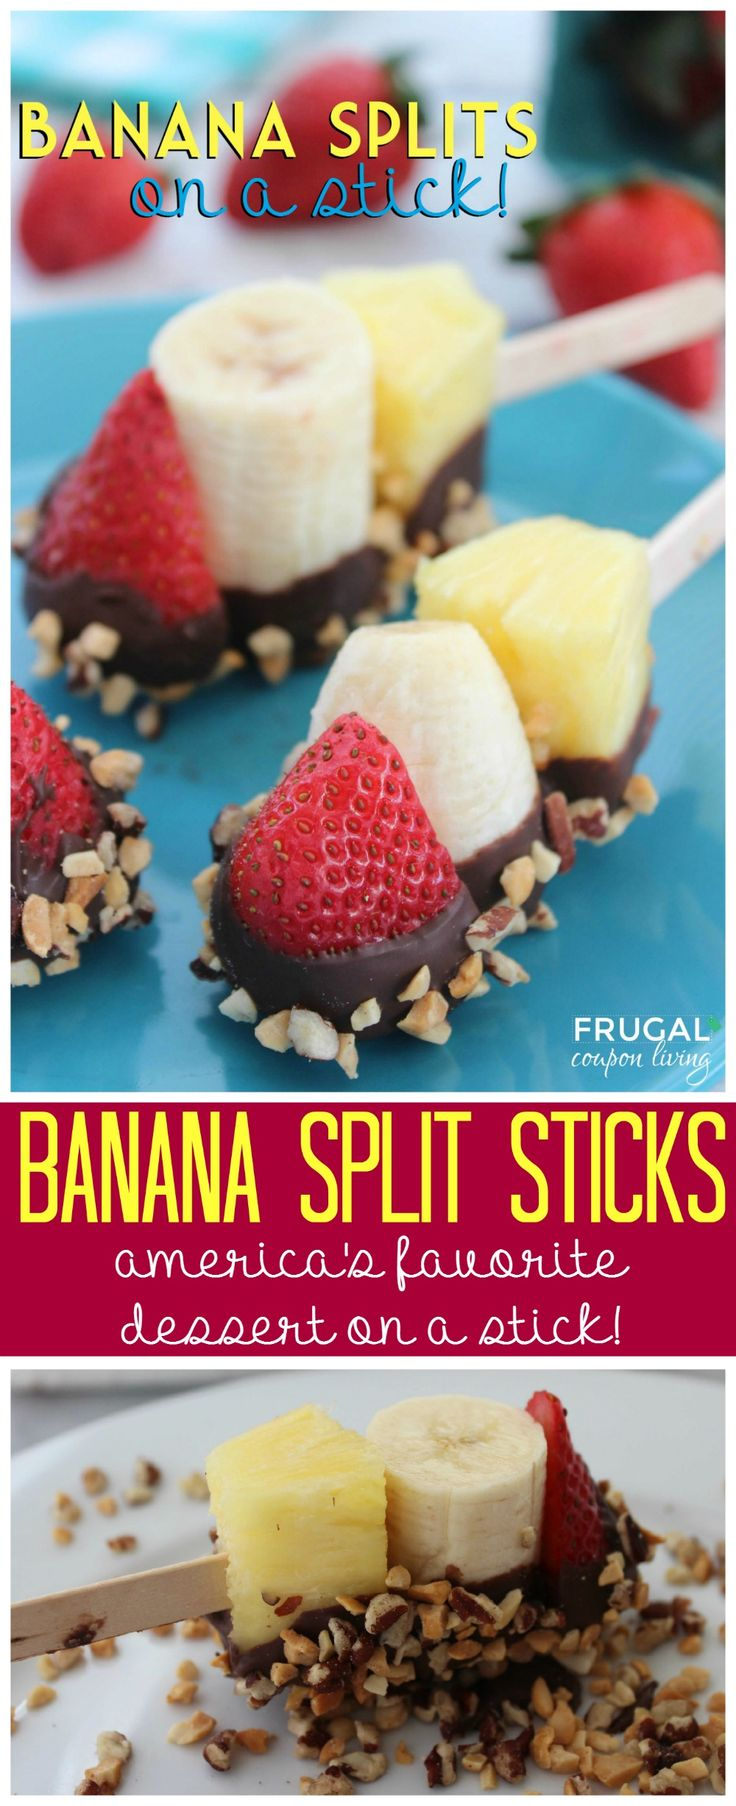 Banana Split Sticks – Dessert on a Stick! Great summertime snack idea, a fun alternative to messy ice cream. Details on Frugal Coupon Living.